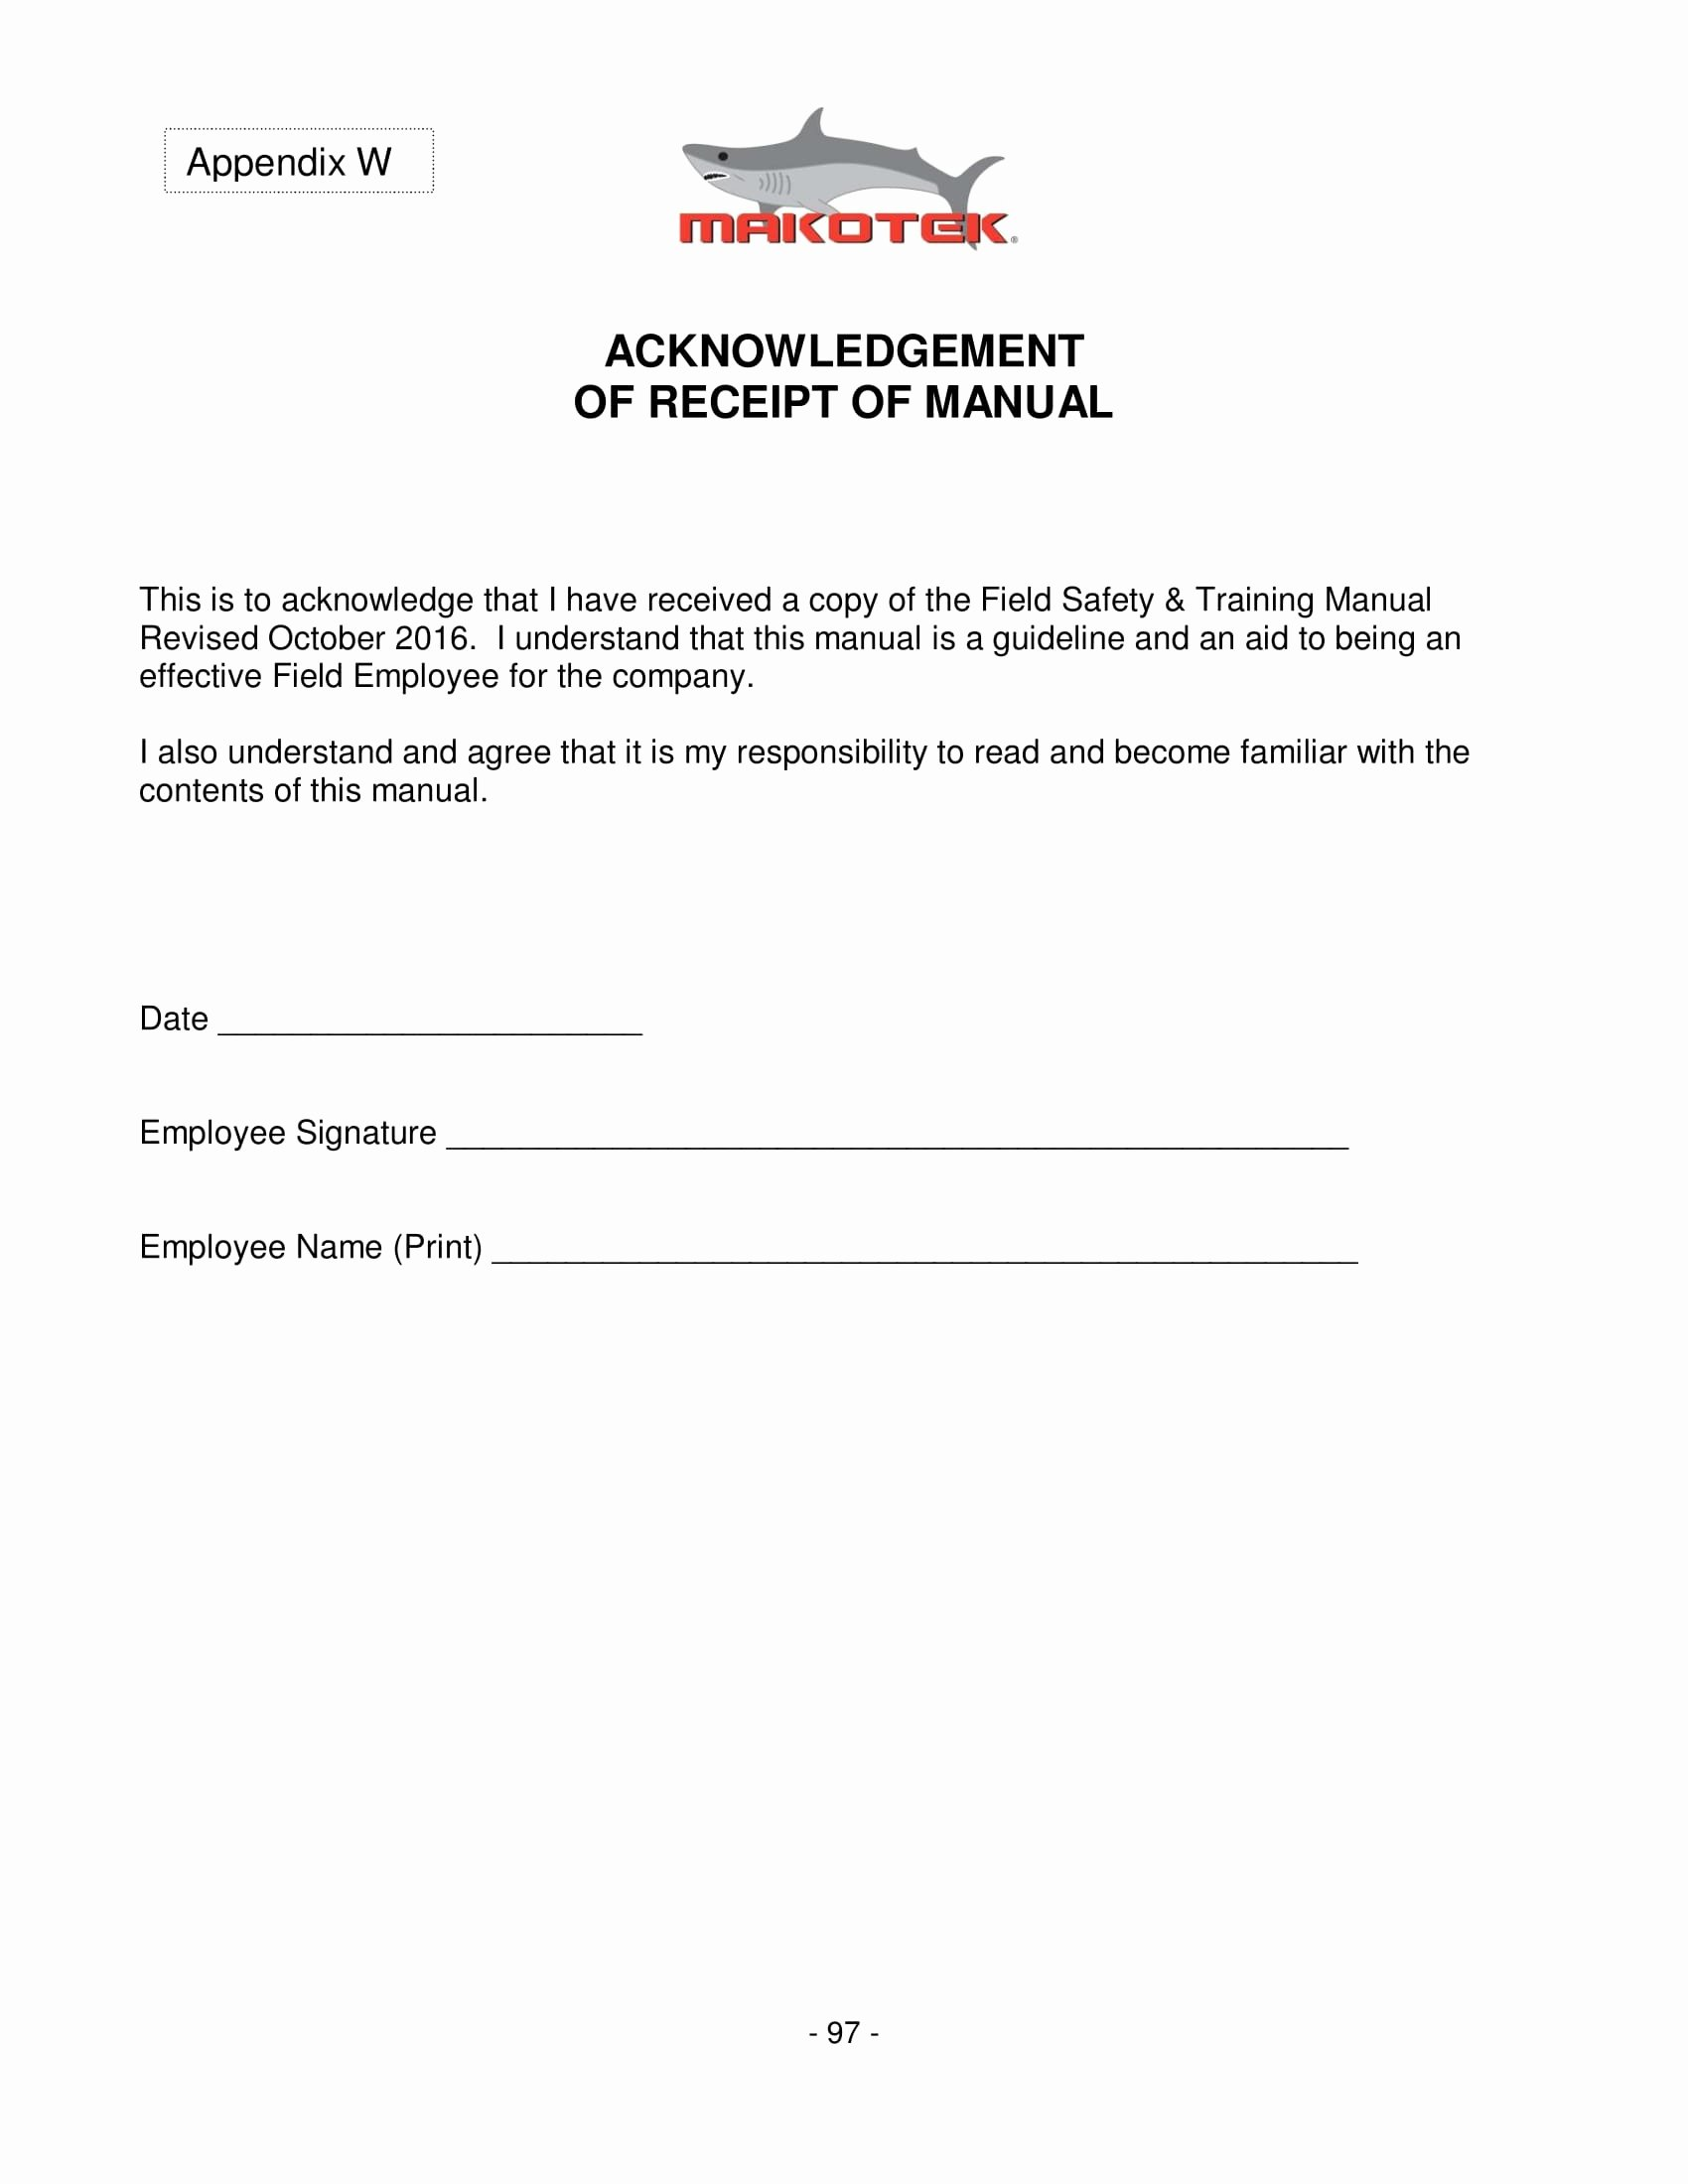 Acknowledgement Of Receipt form Template Best Of 4 Employee Manual Acknowledgment forms Word Pdf